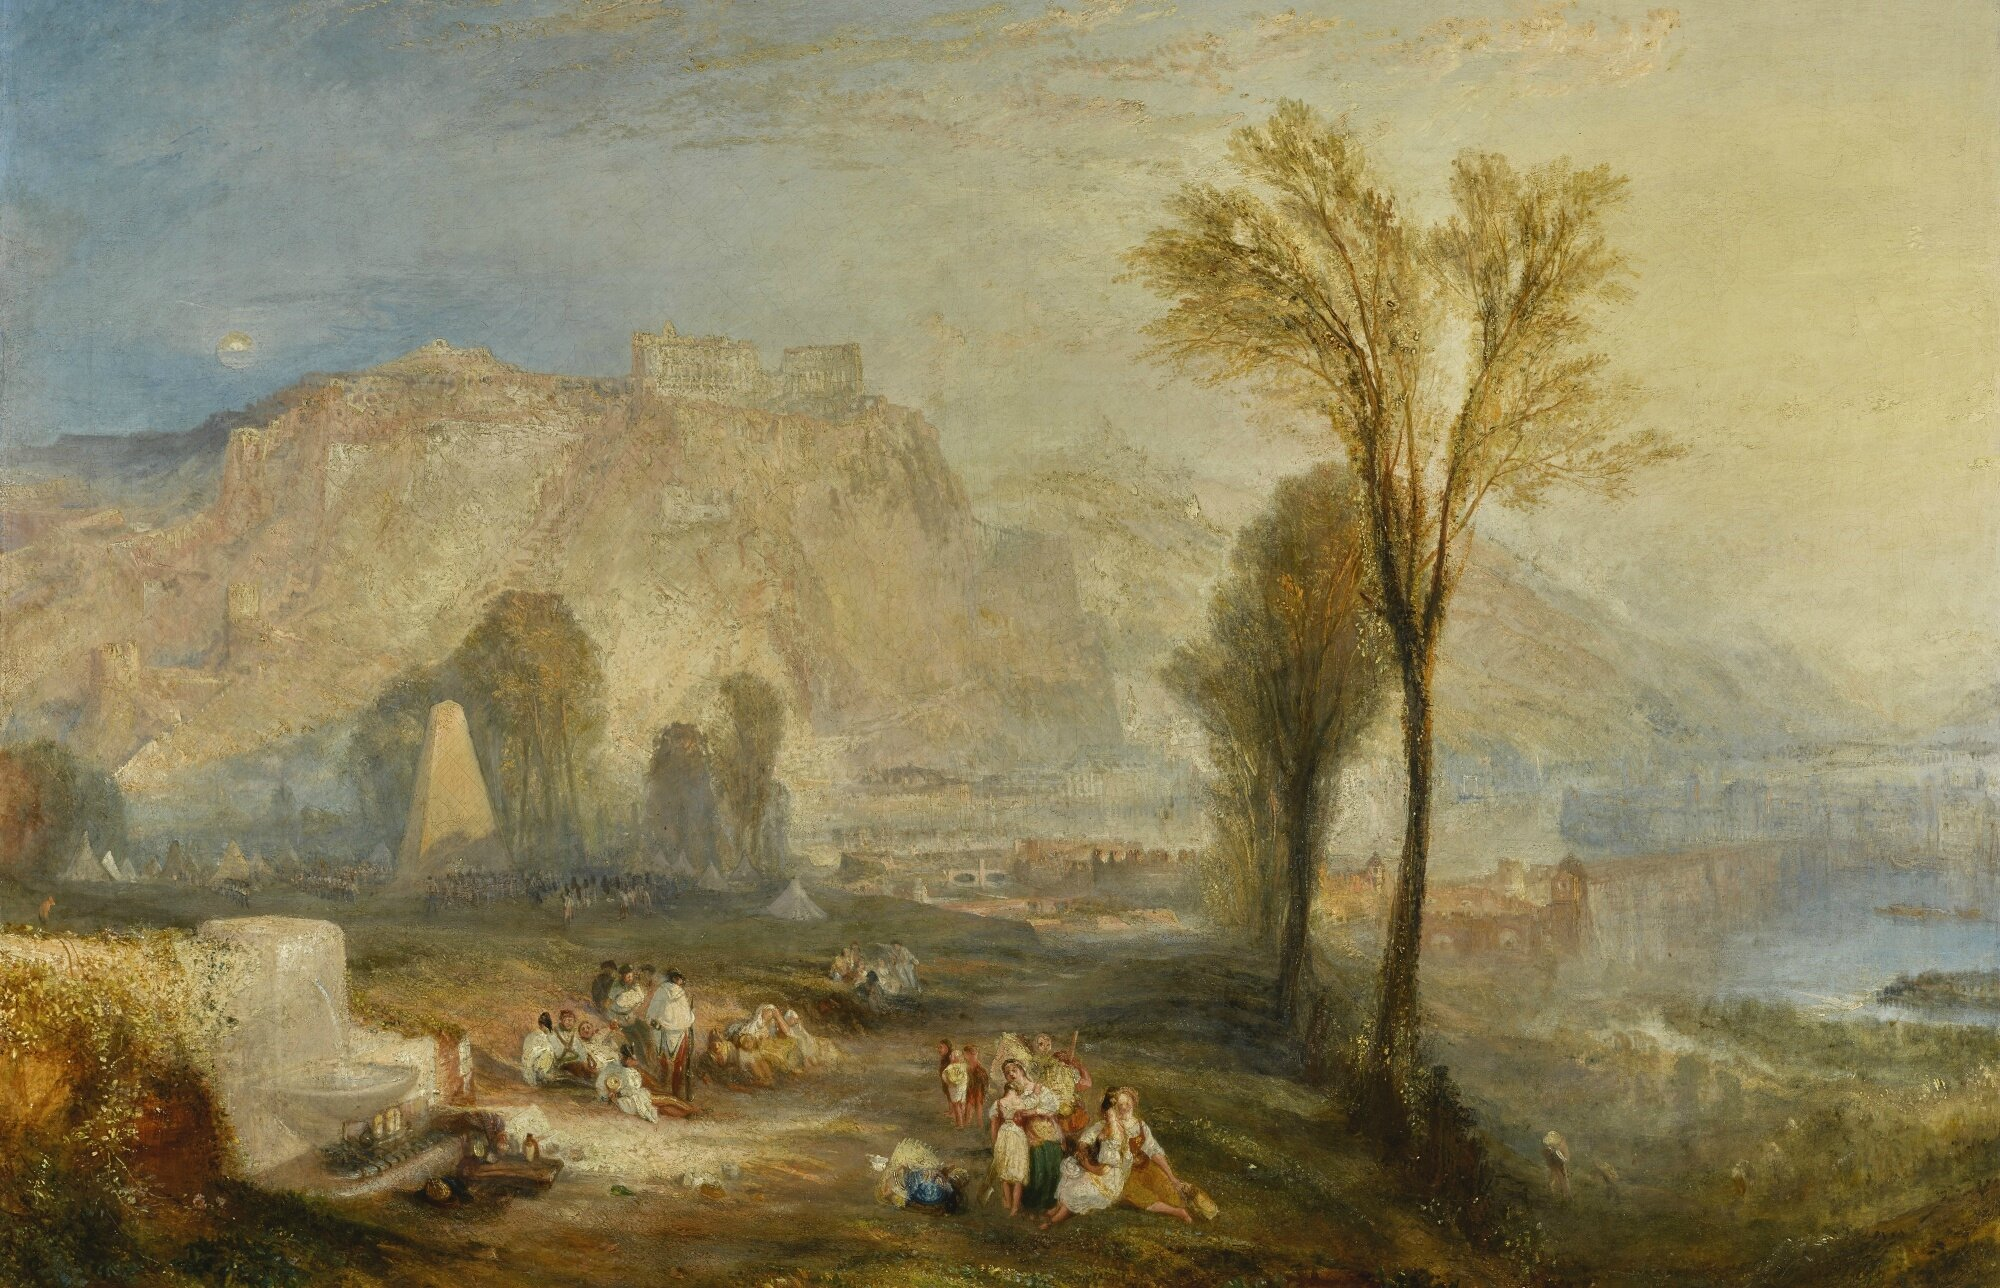 Mary Chaplin Artiste Peintre masterpiecej.m.w turner unveiled at sotheby's ahead of